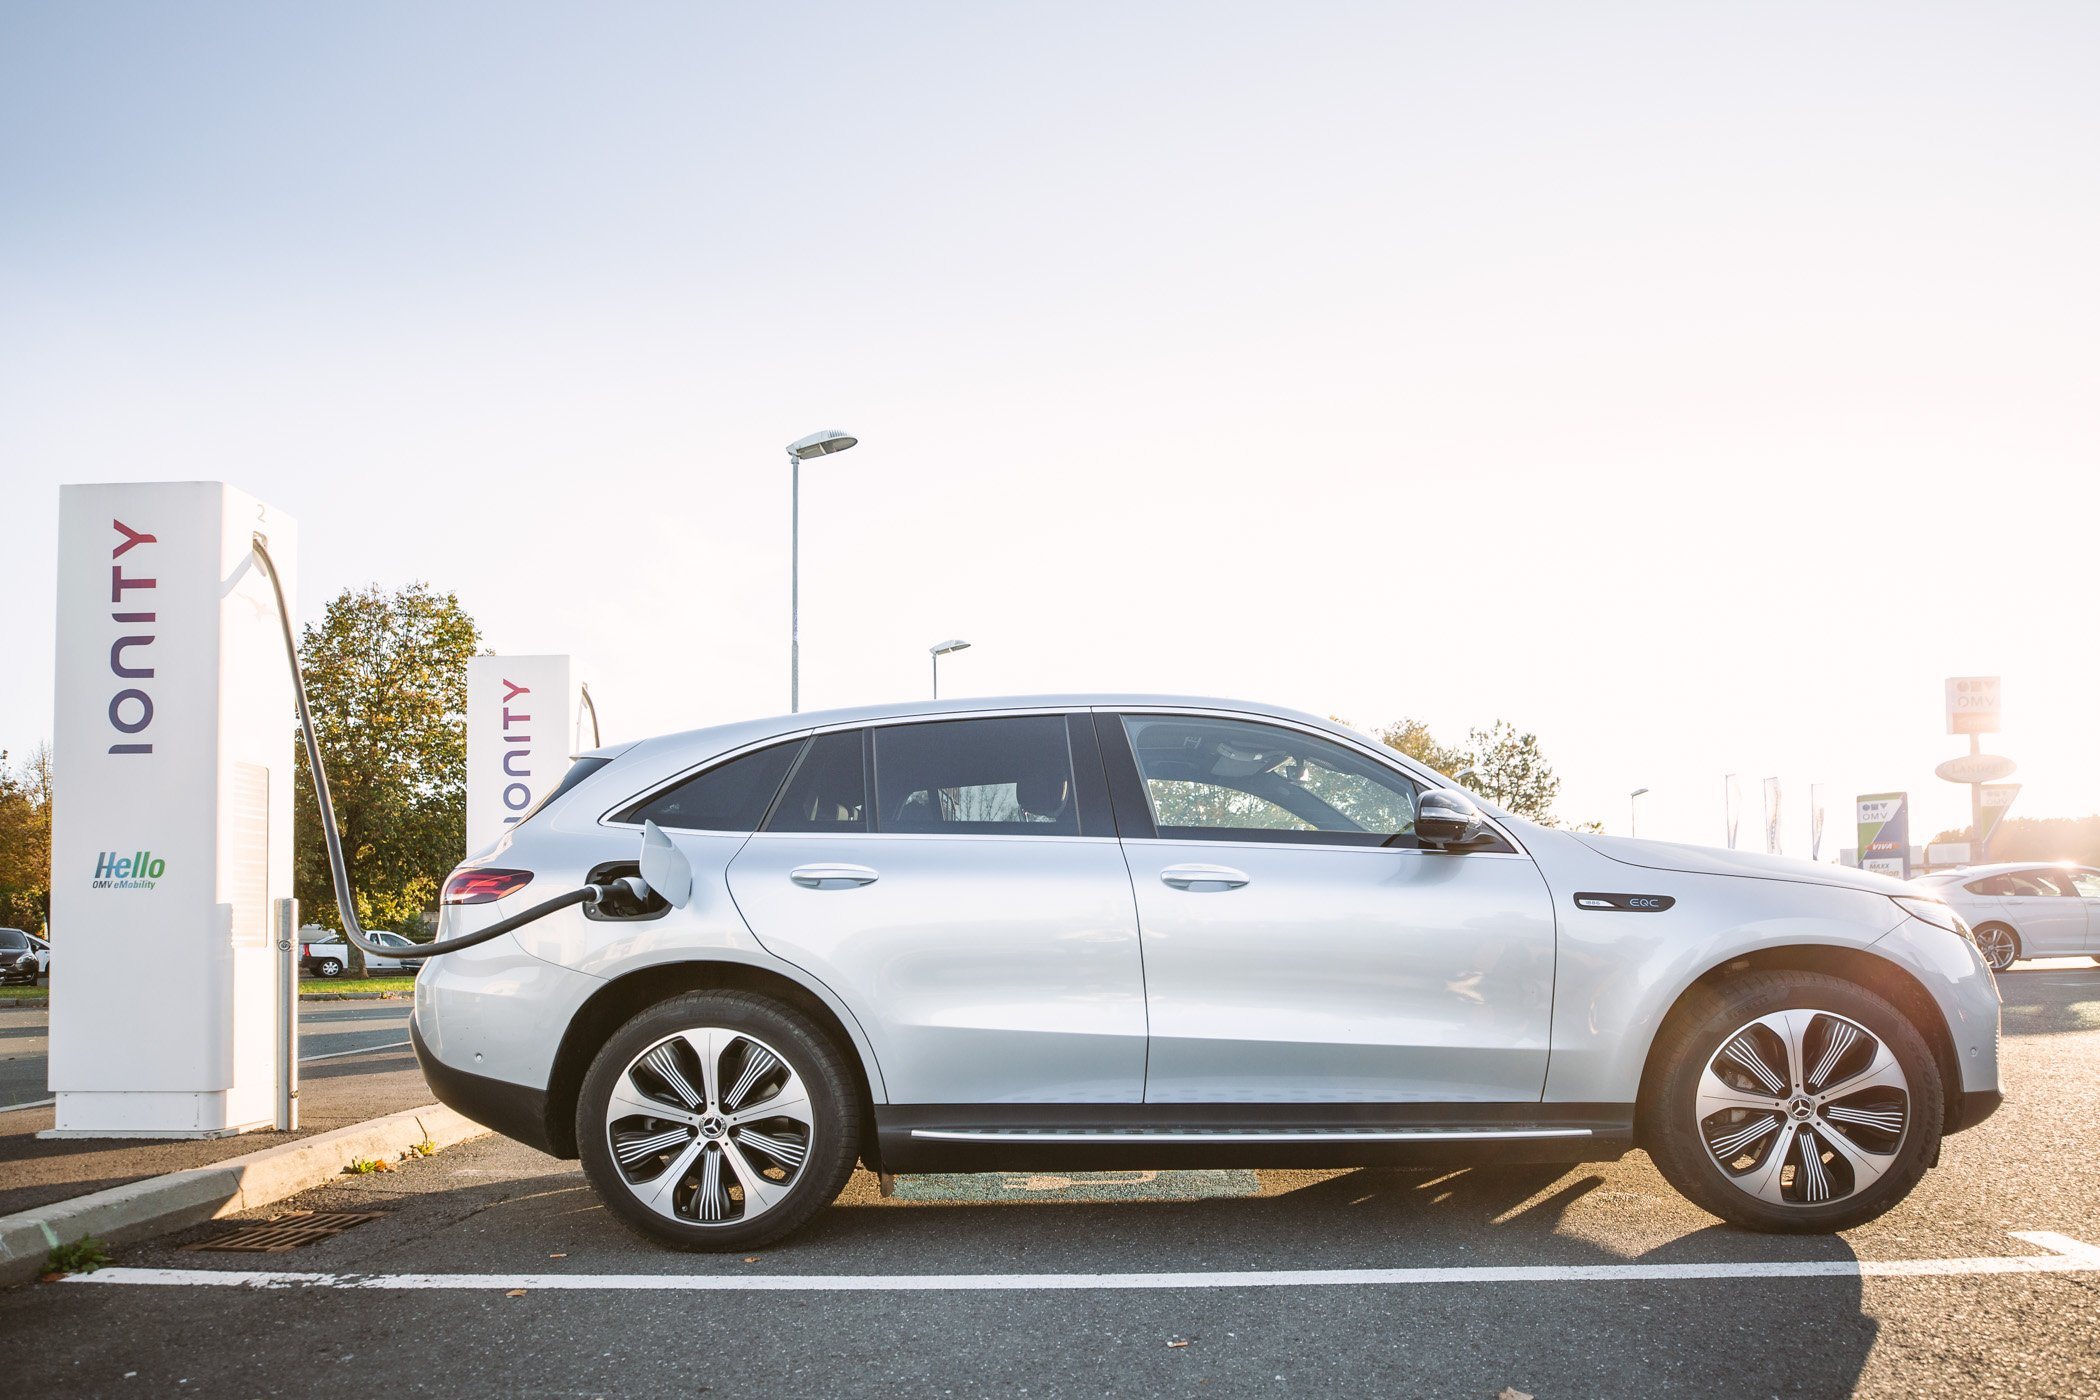 Charging the Mercedes EQC at an Ionity High power charging station